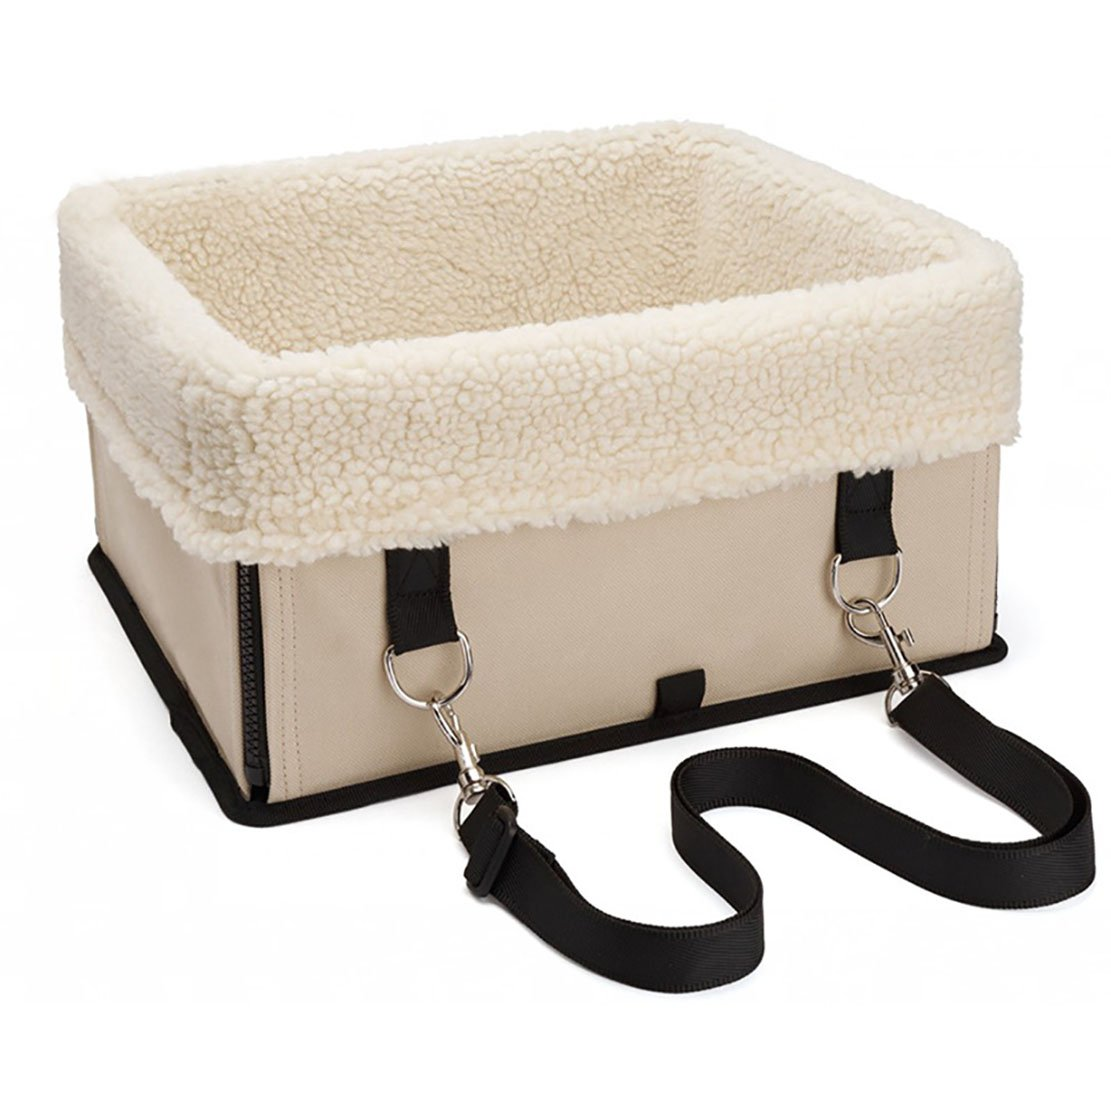 Beige L Beige L Pet Booster Seat Dog Car Seat Carrier with Seat Belt for Dogs and Cats (L, Beige)